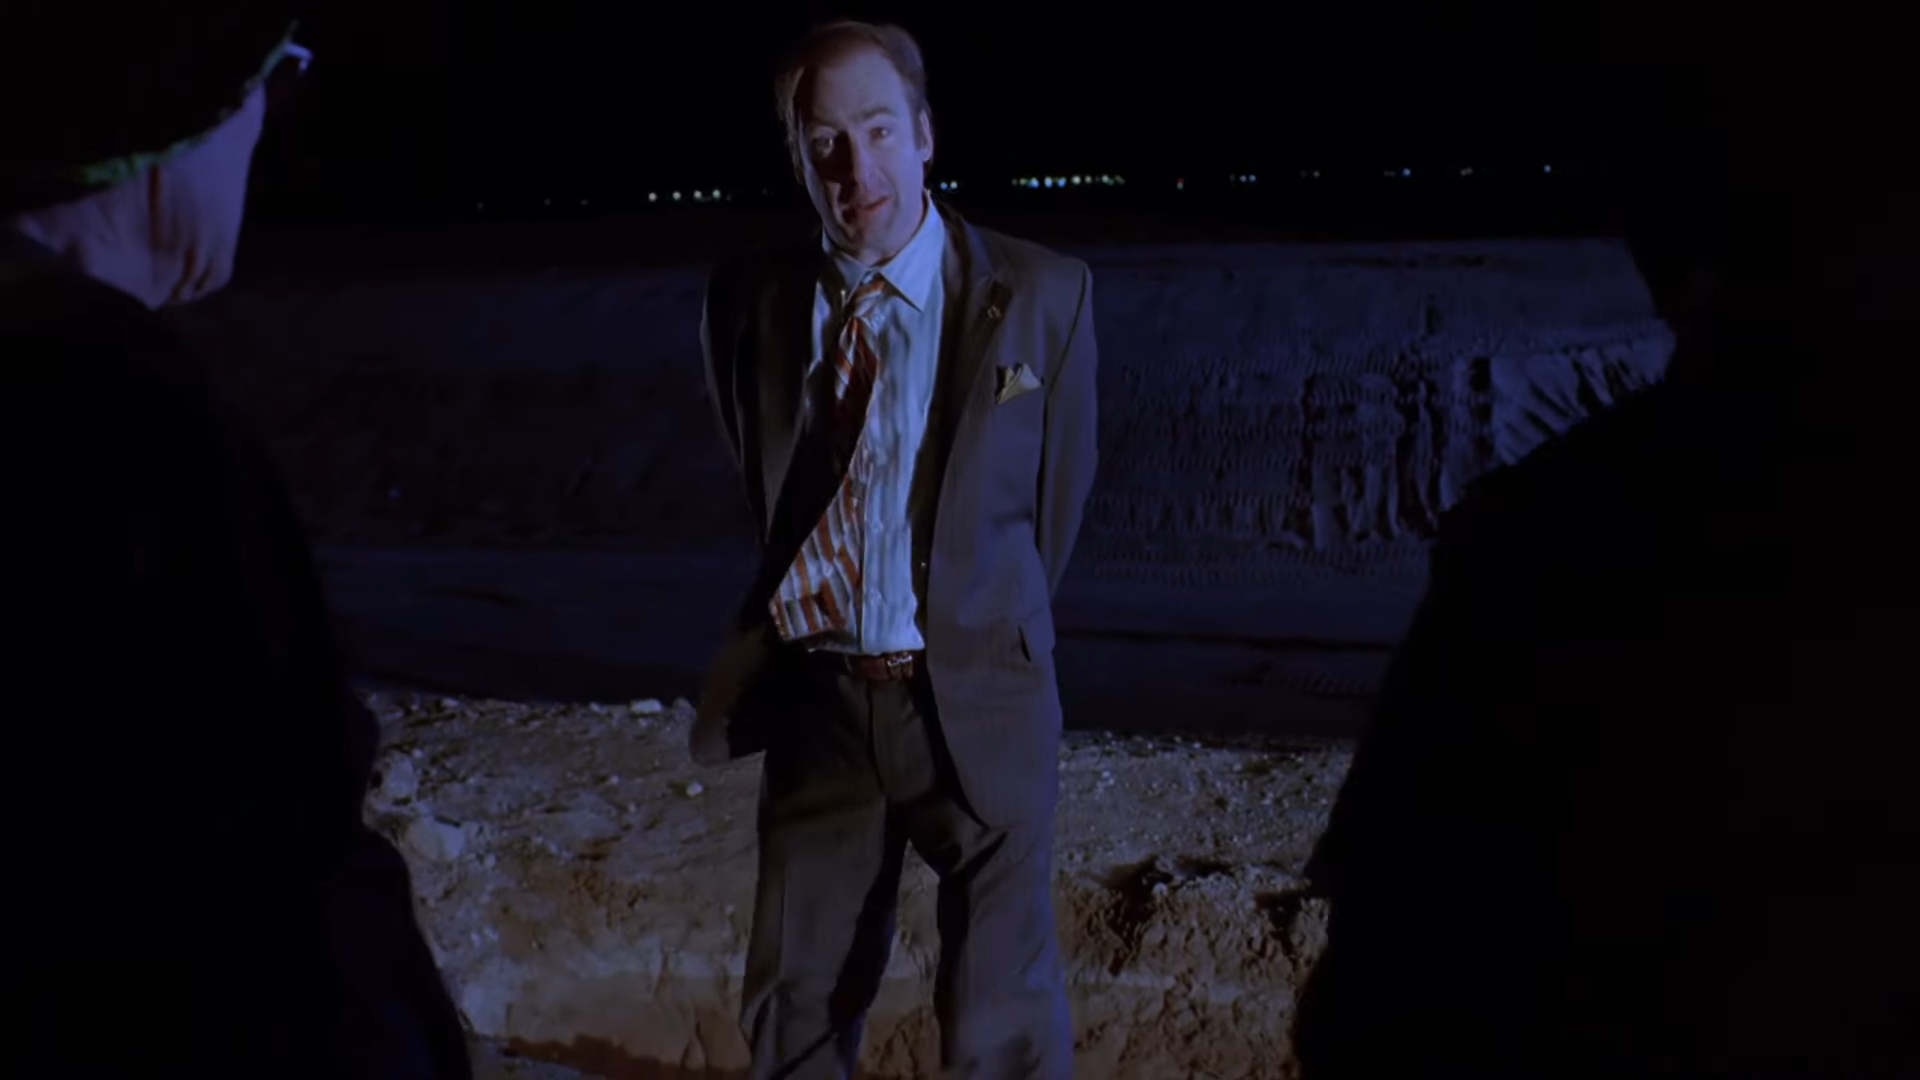 File:2x08 - Better Call Saul 9.png